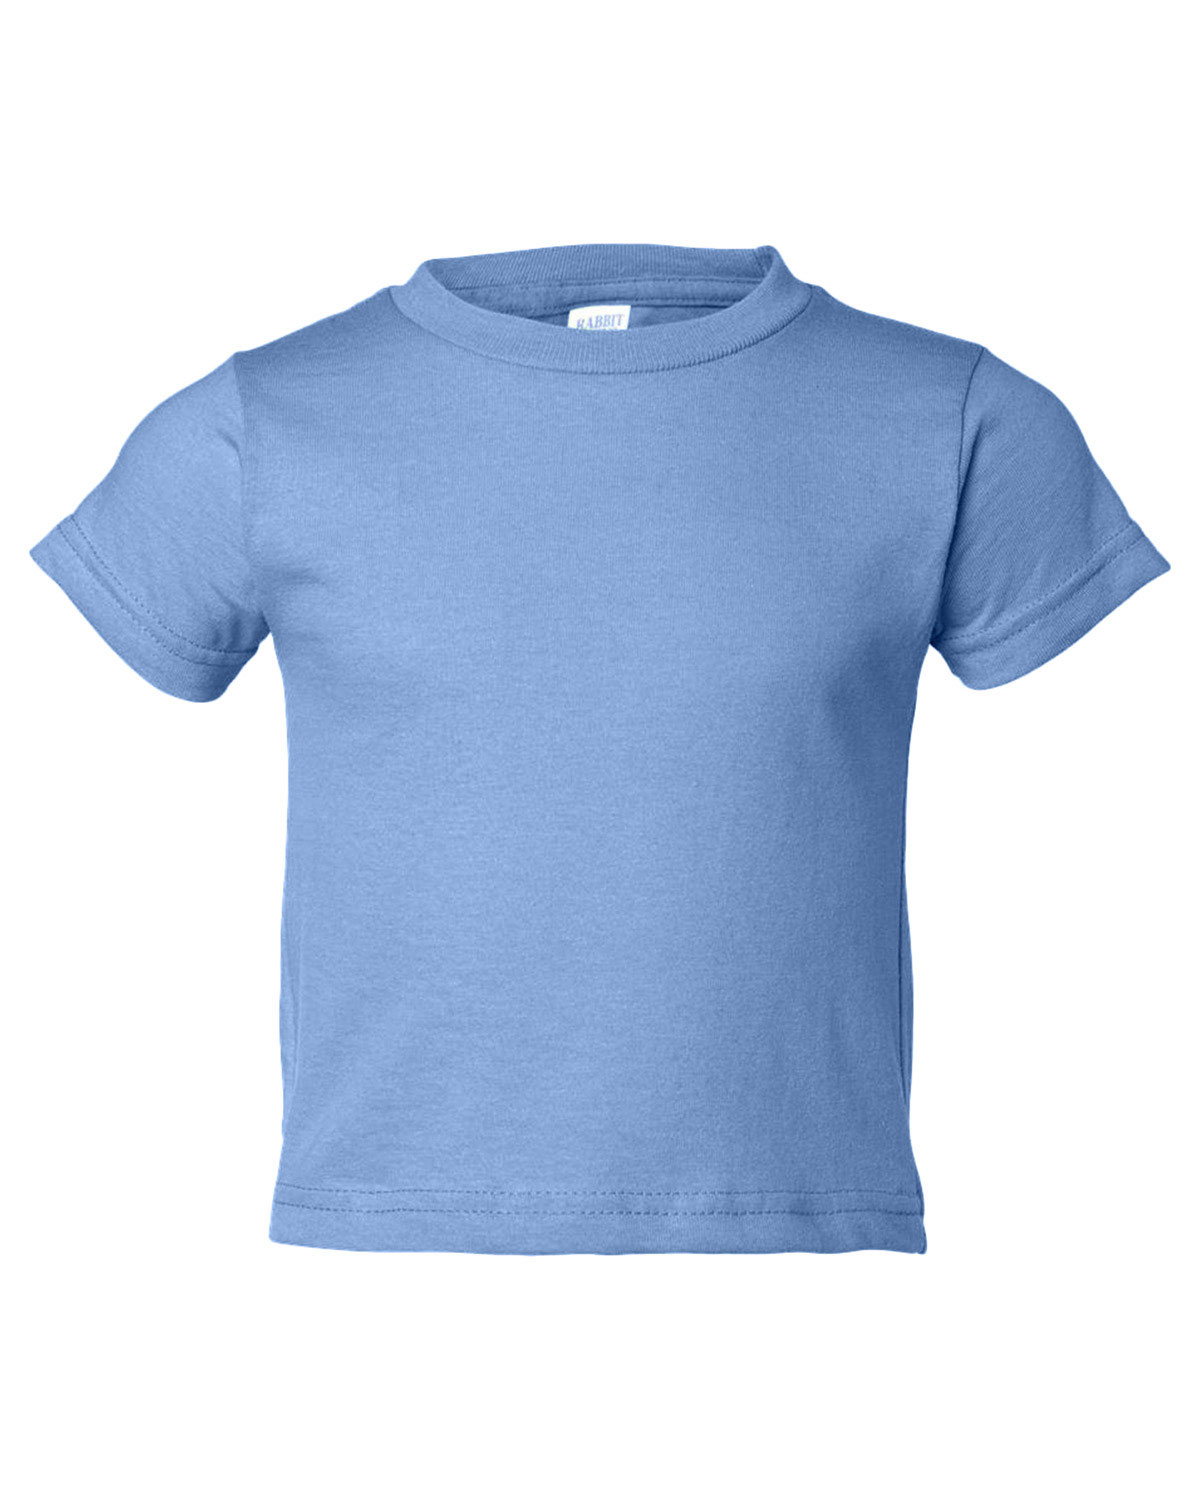 Rabbit Skins 3301T Toddlers Tee Periwinkle at GotApparel